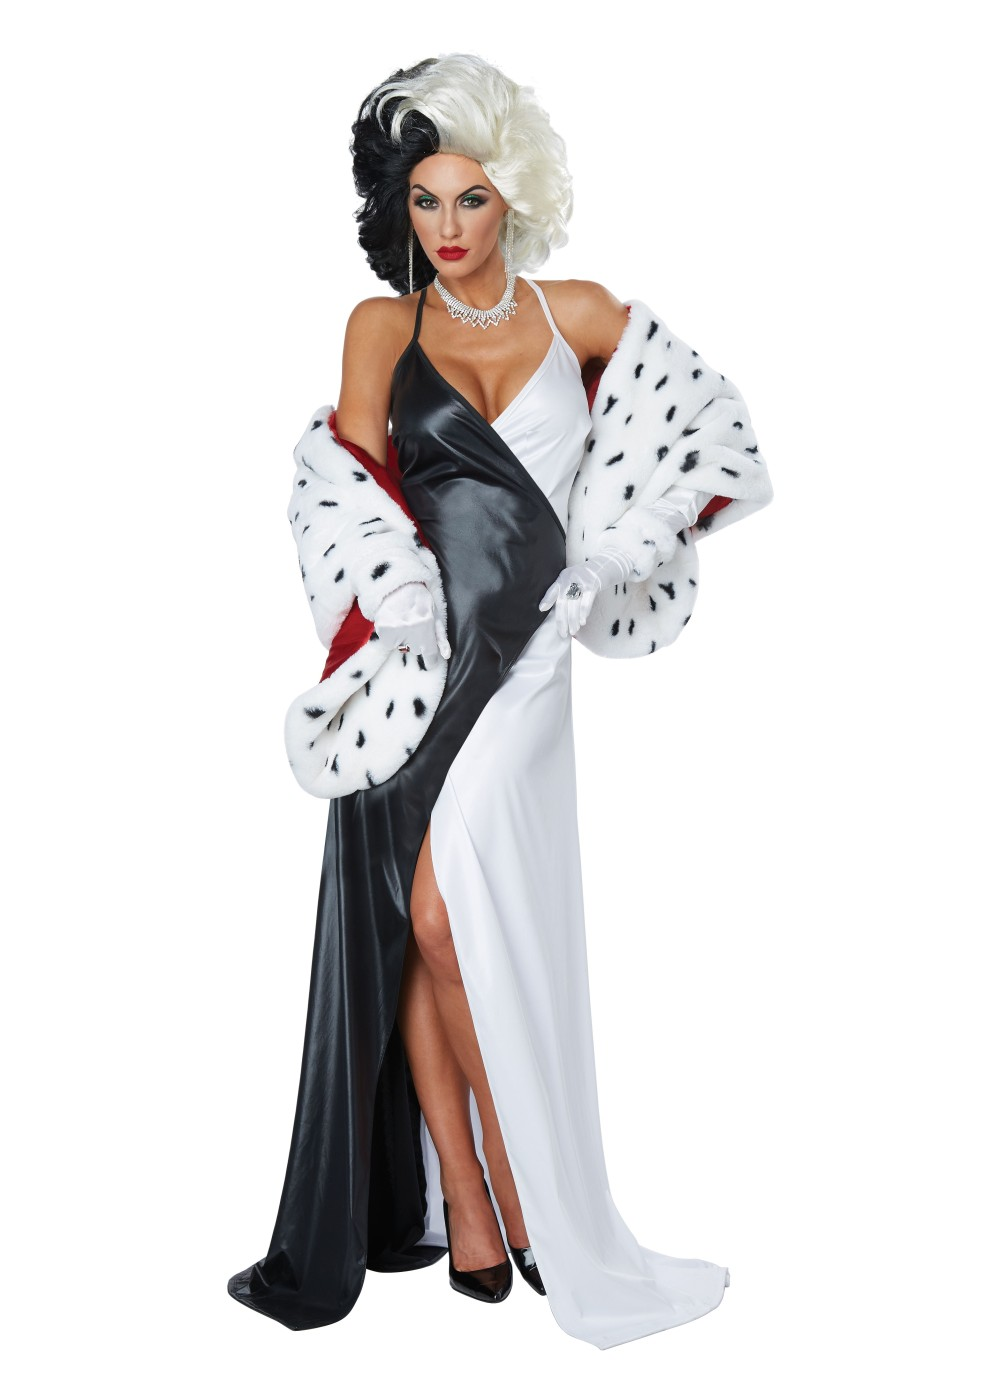 big selection of 2018 halloween costumes for women